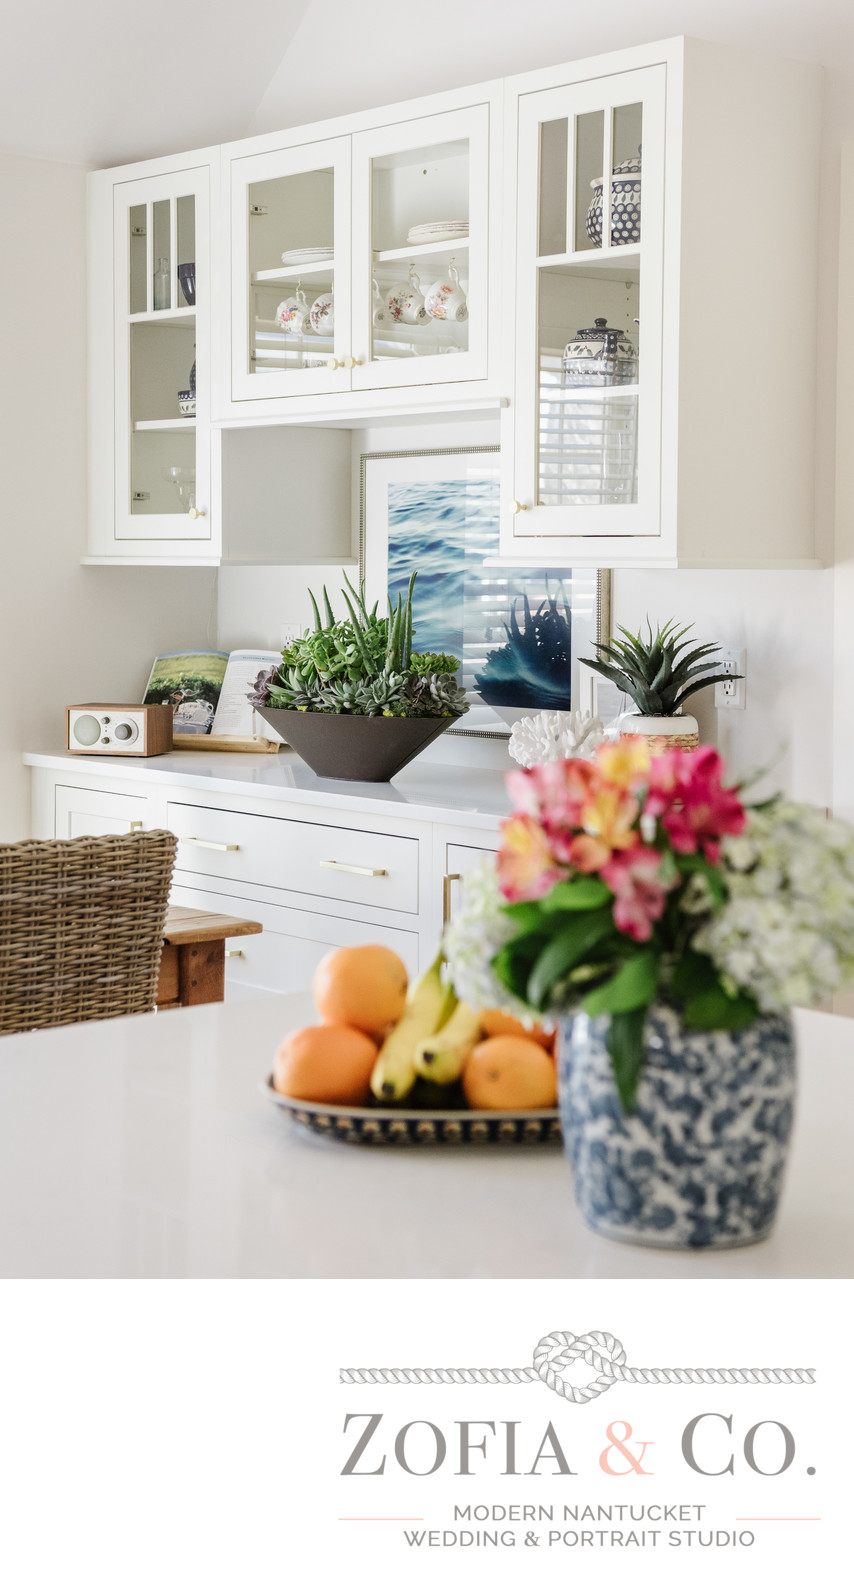 Nantucket interior design photographer